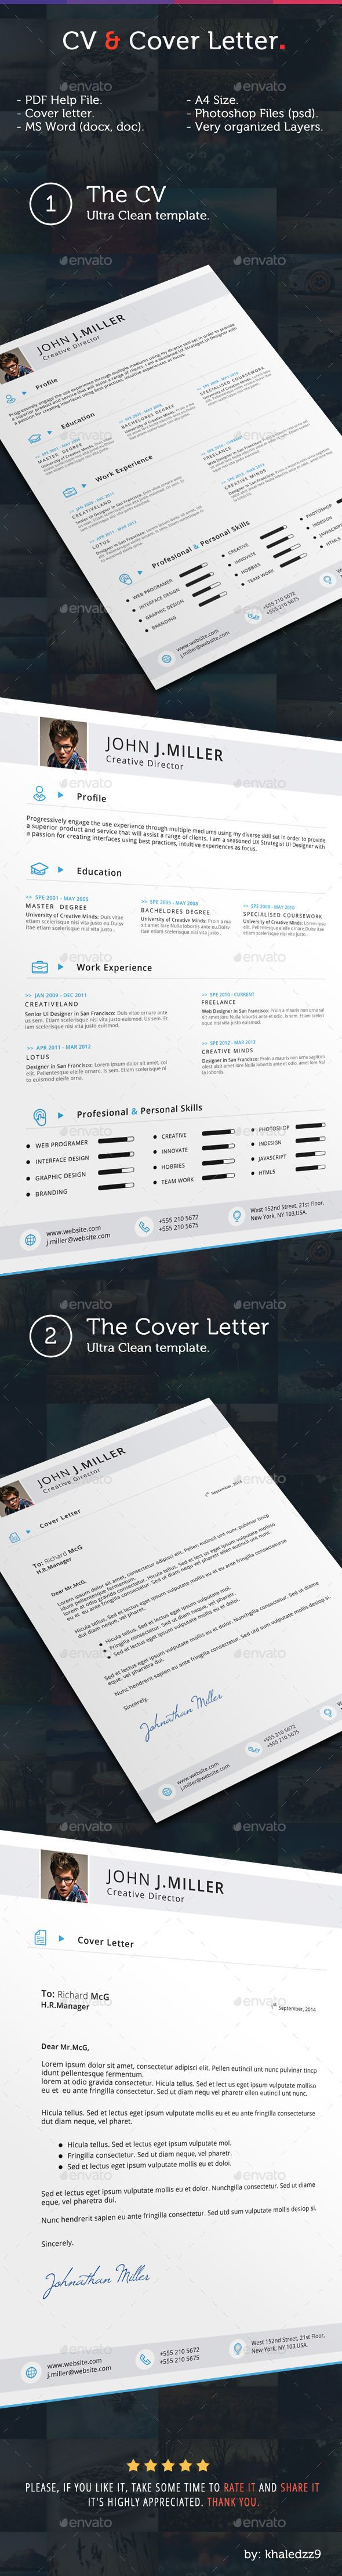 CV & Cover Letter | Cv cover letter, Template and Creative resume ...